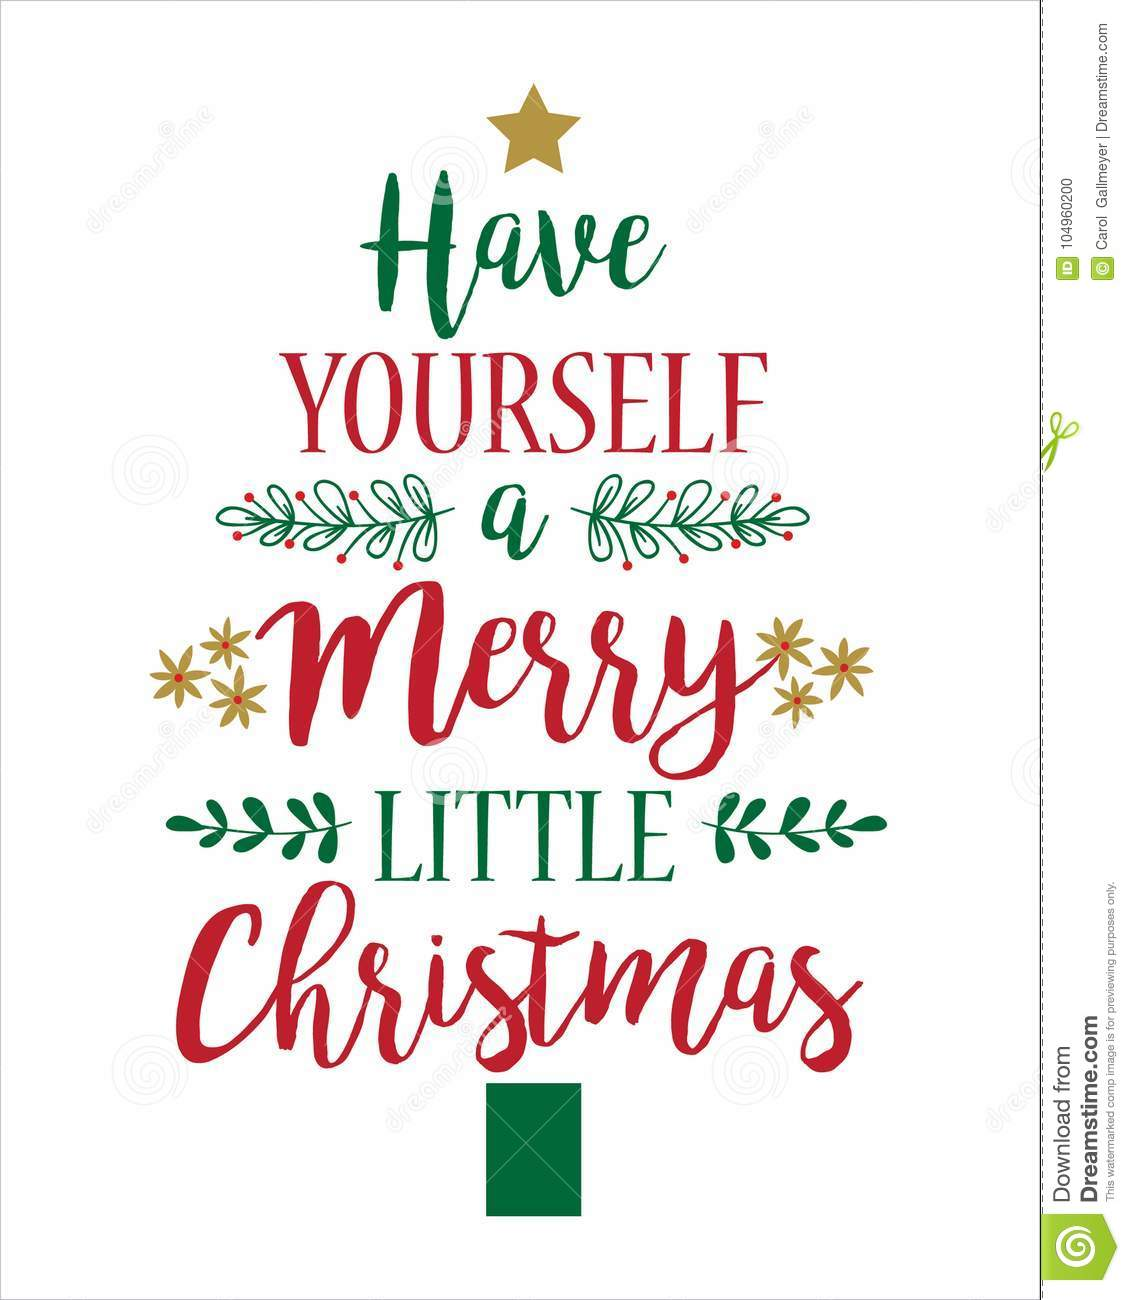 Merry Little Christmas Lyrics.Christmas Greeting Card Template Have Yourself A Merry